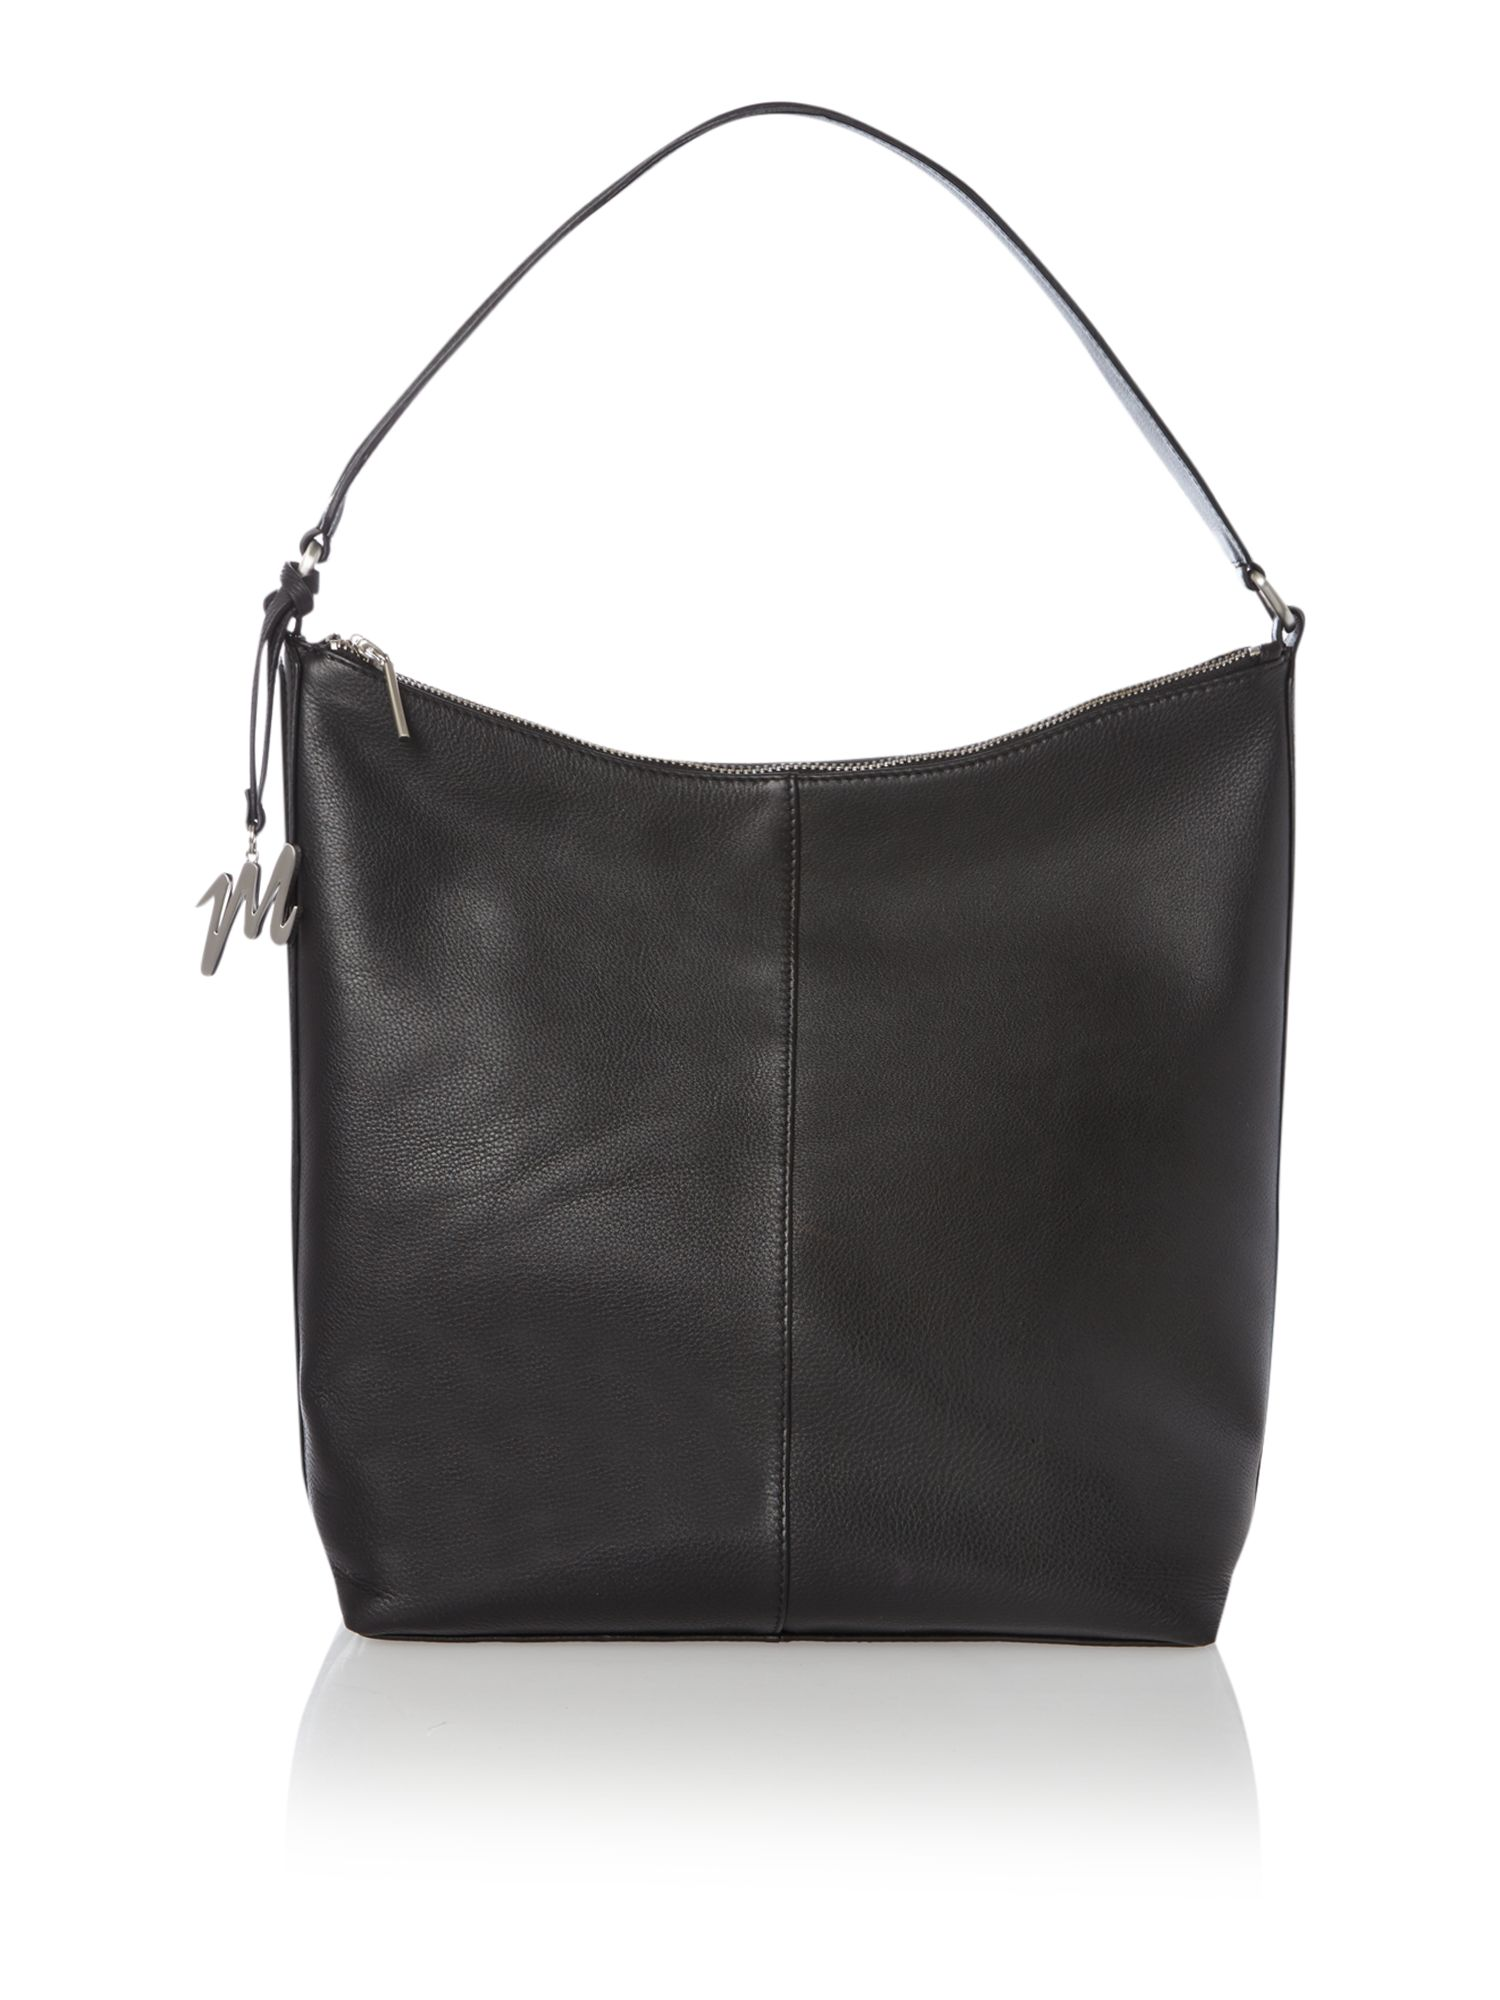 Simone hobo bag